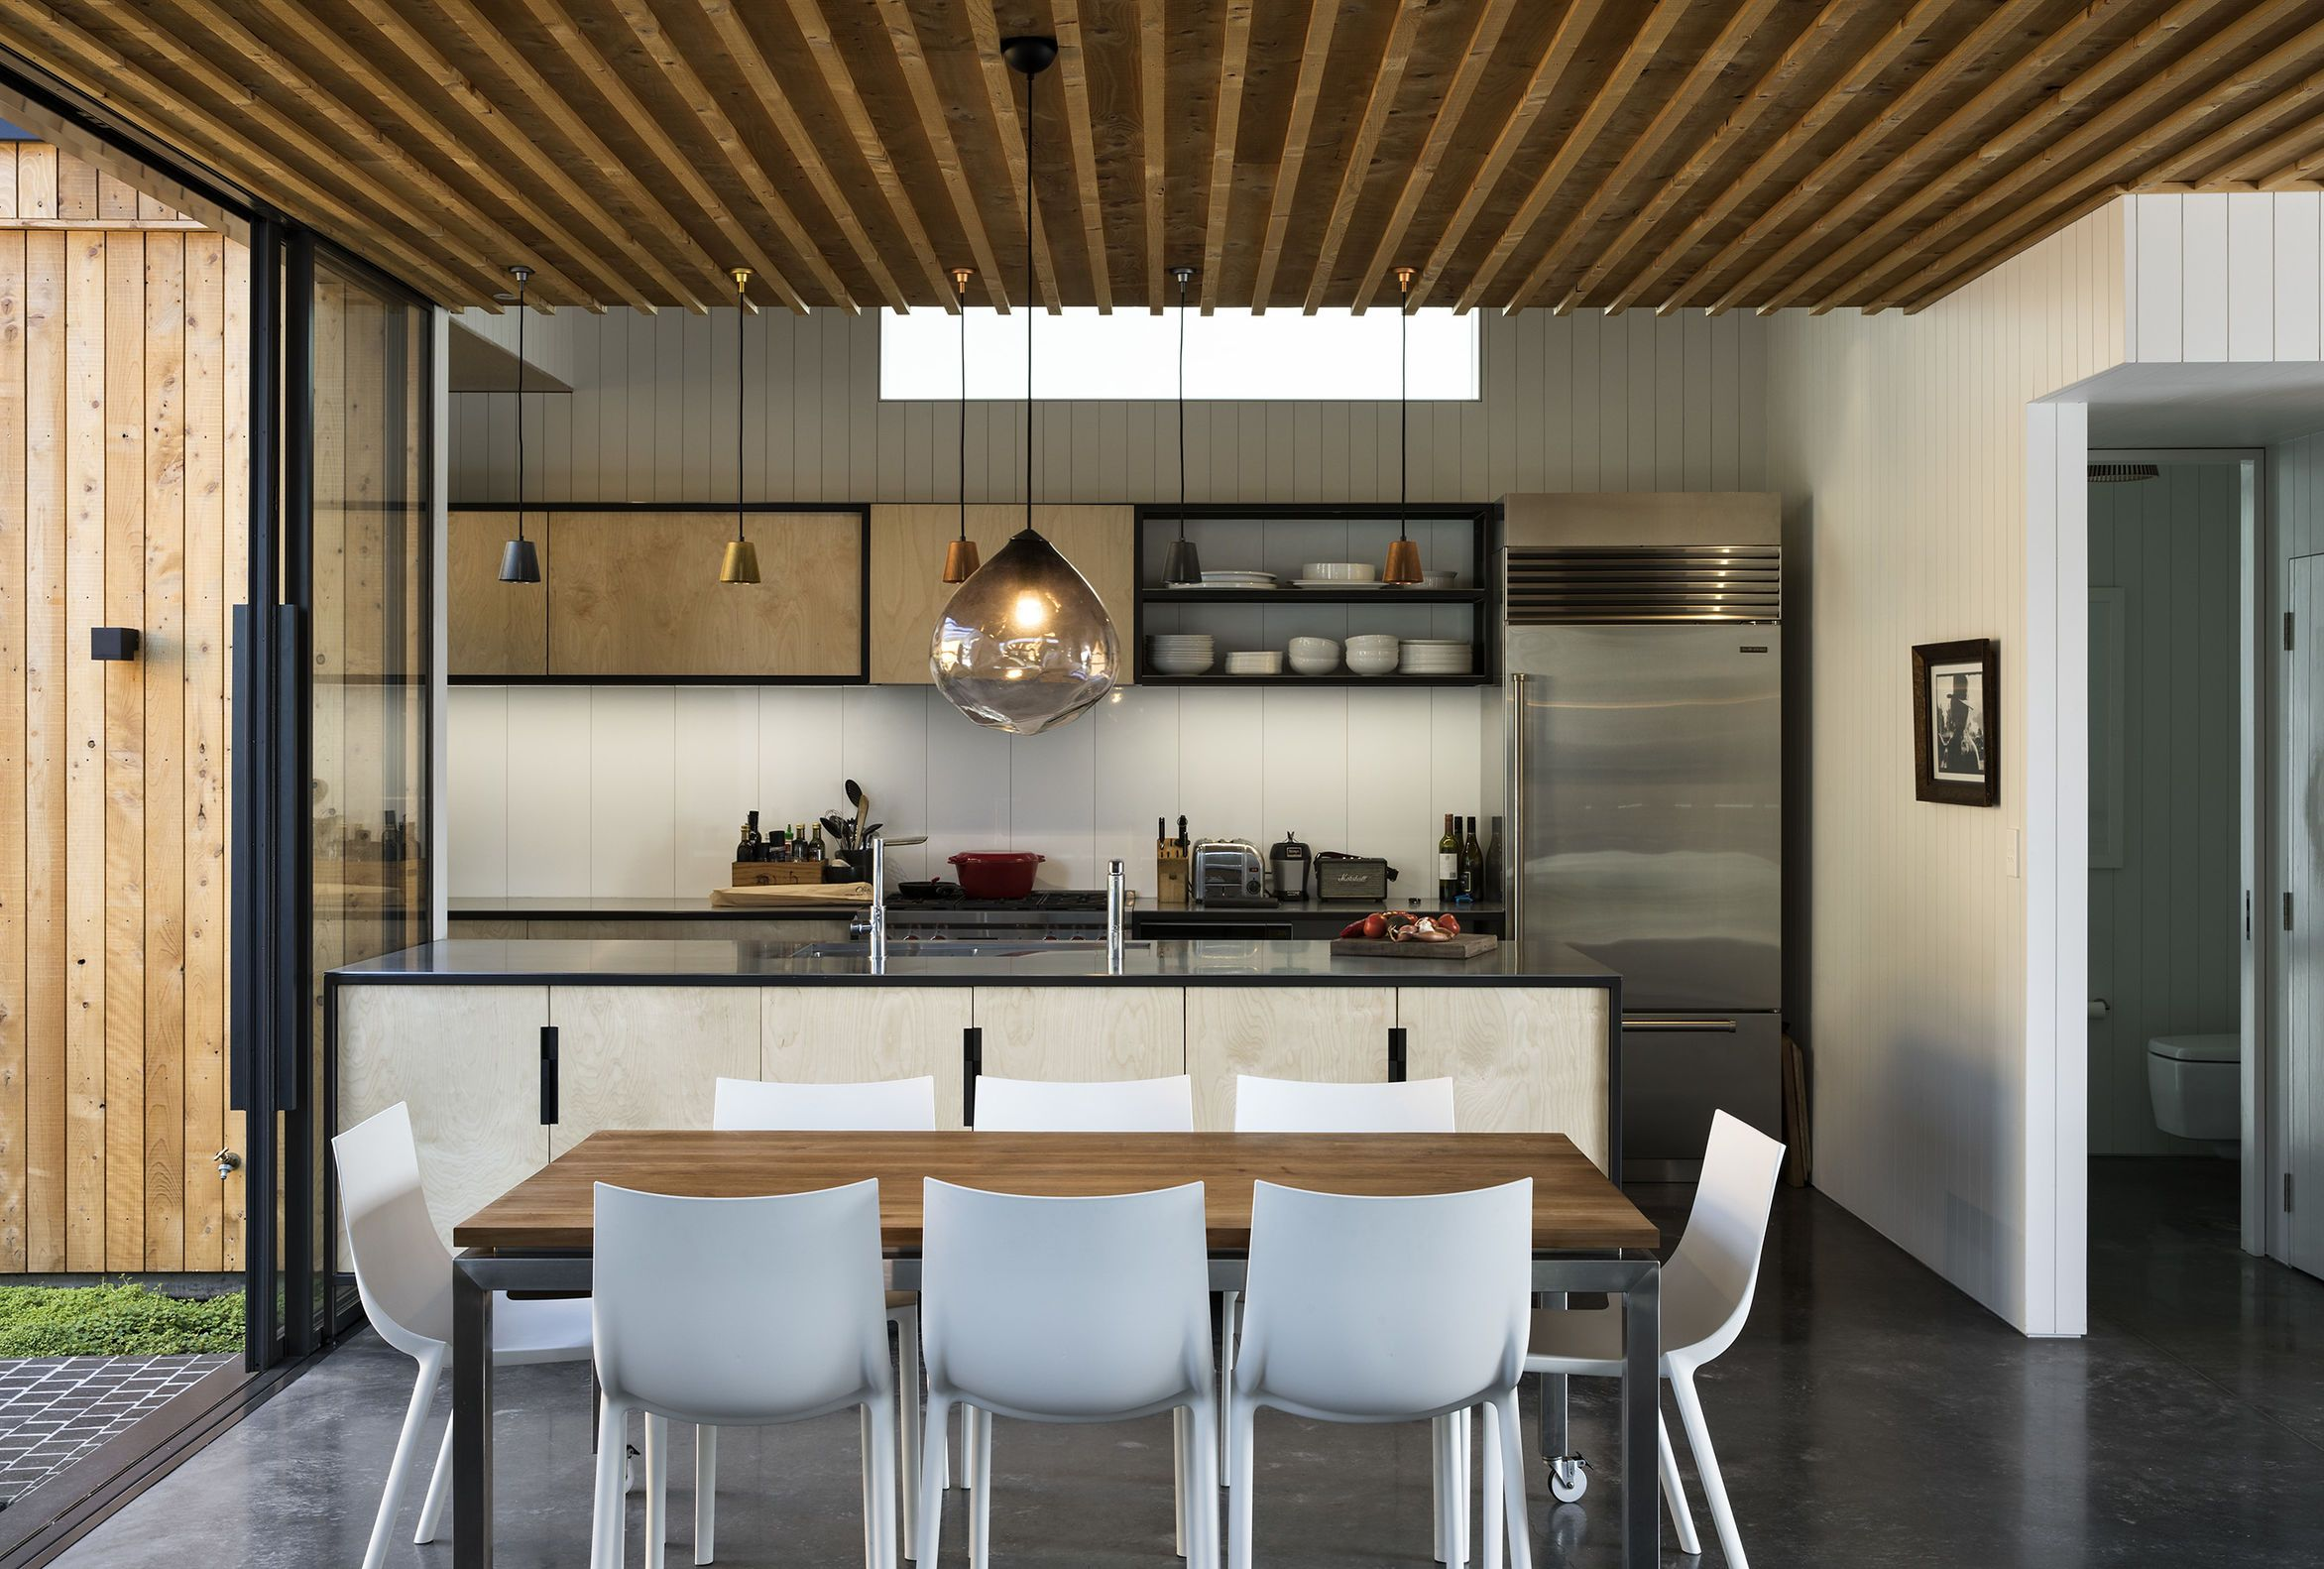 Pin by James Powell on Renovation ideas | Pinterest